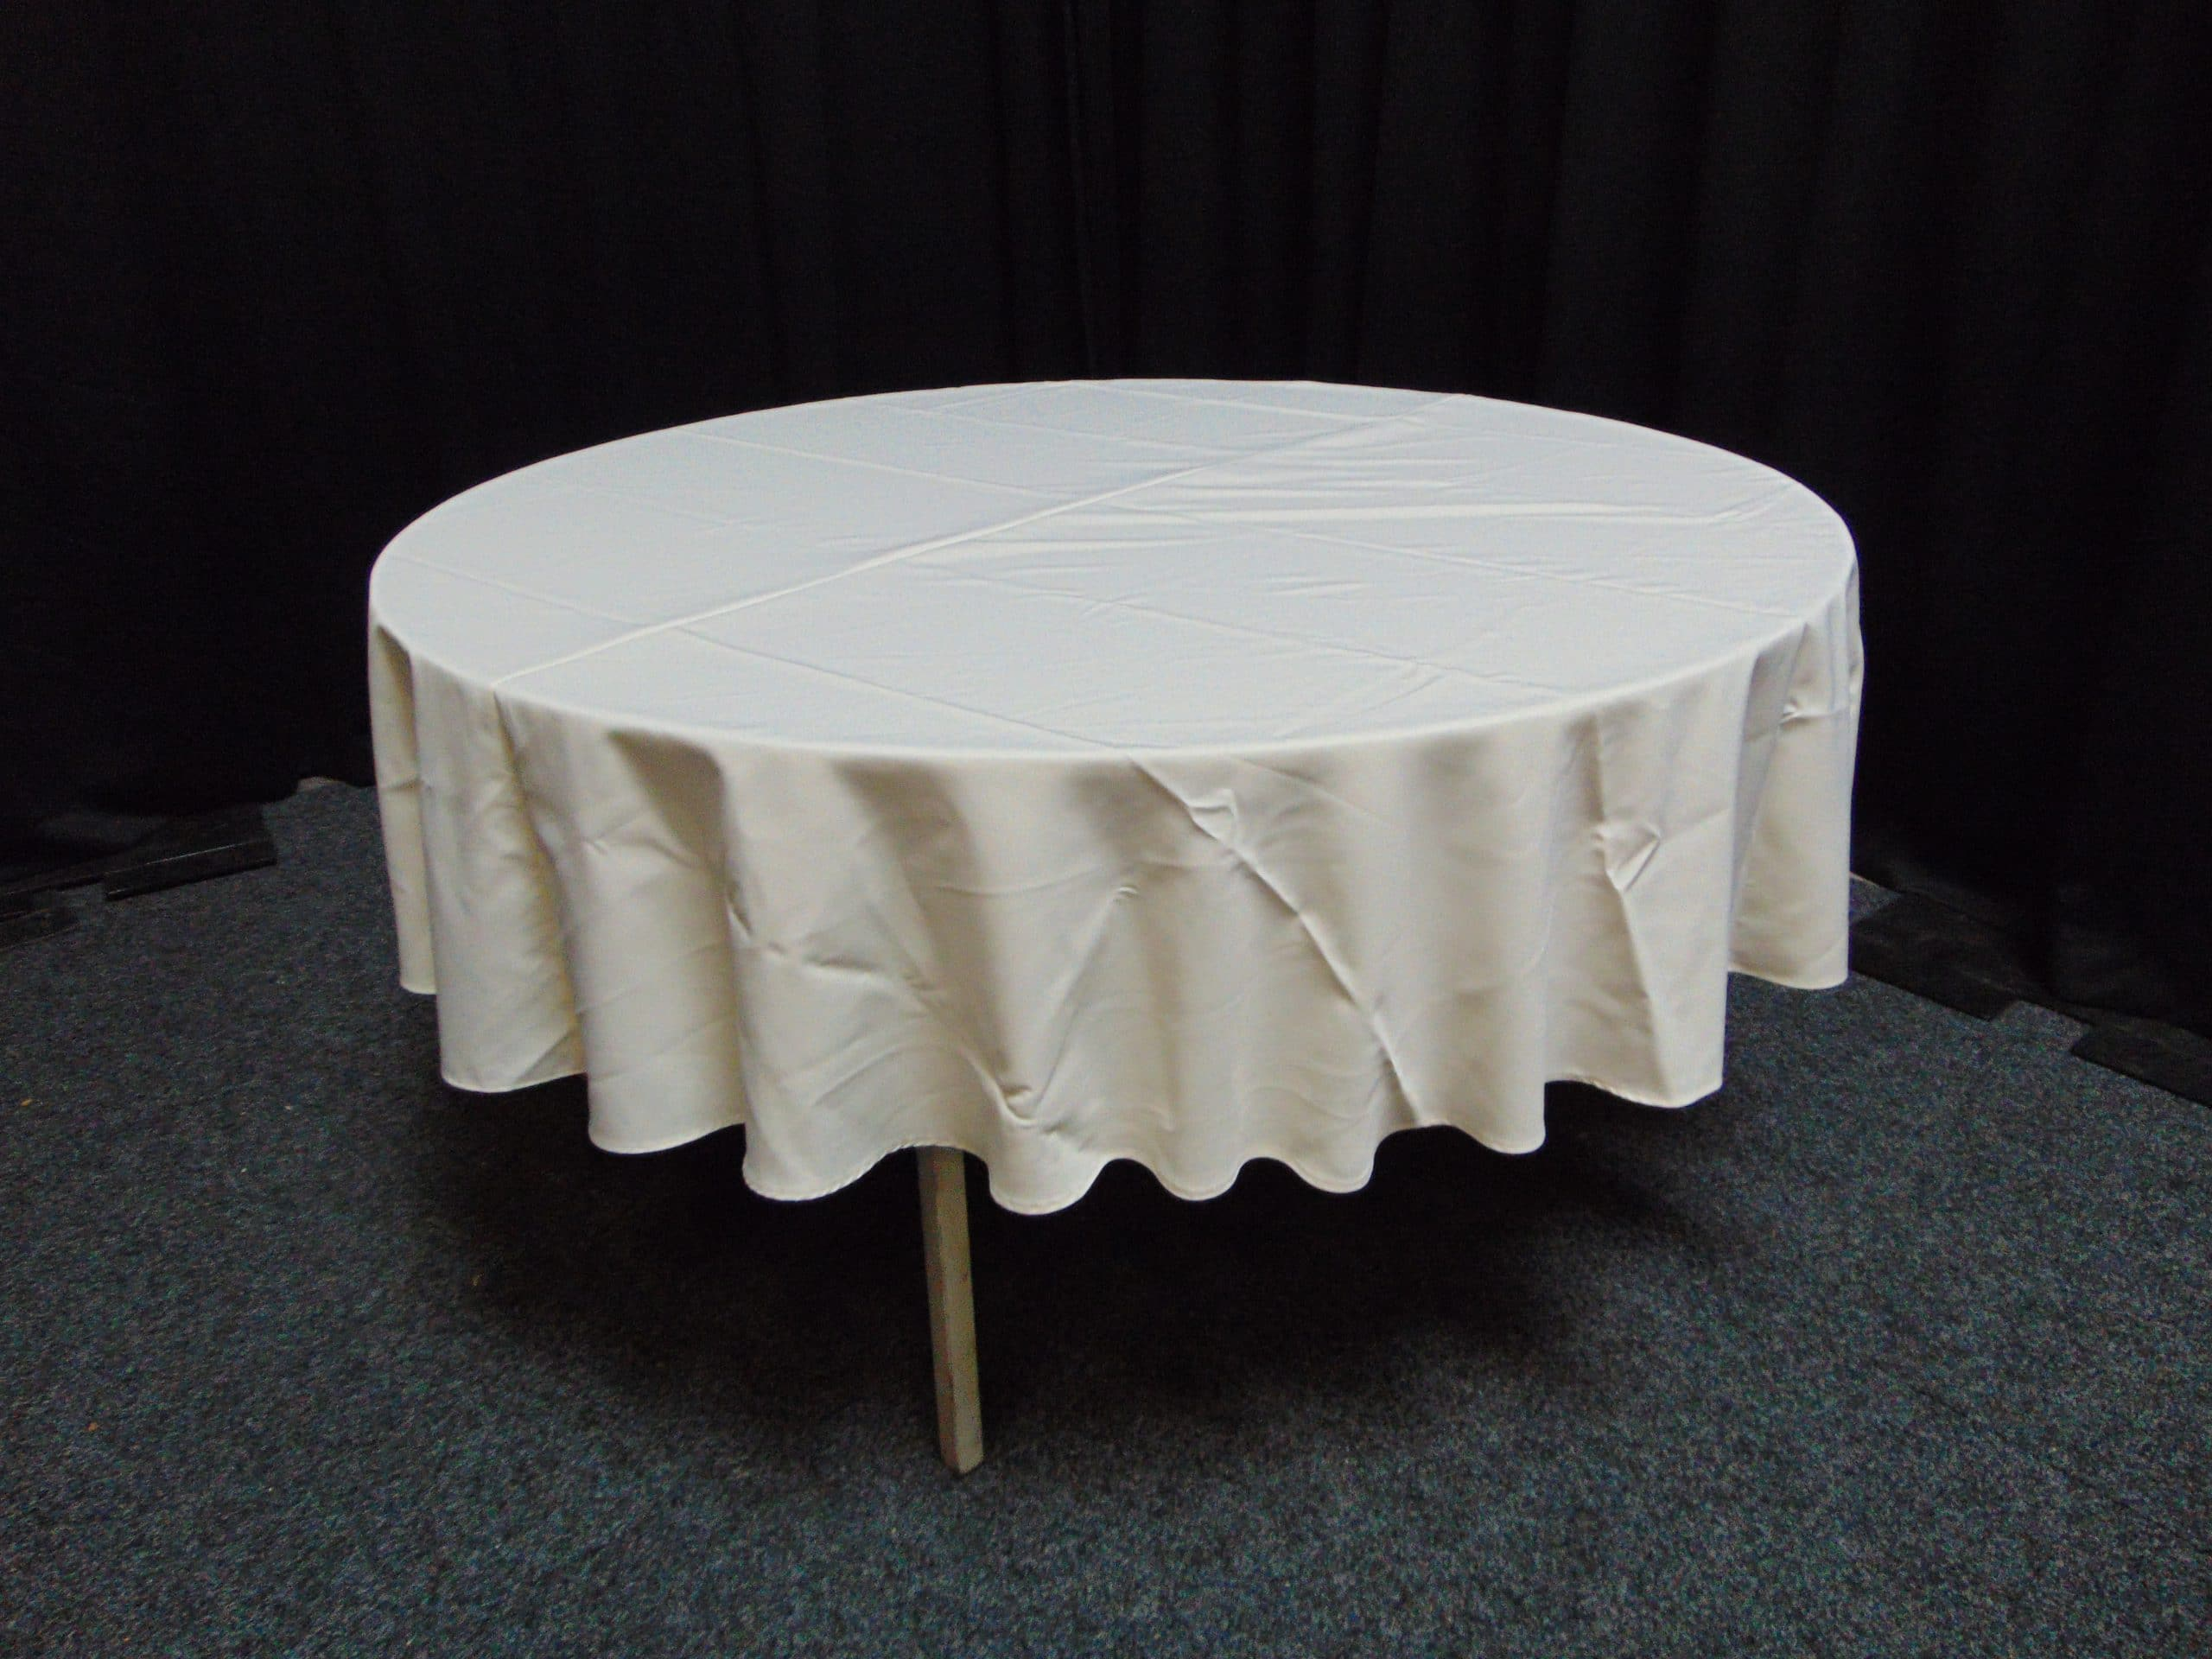 Rond 180 Topkleed Rond 180 Cm Wit